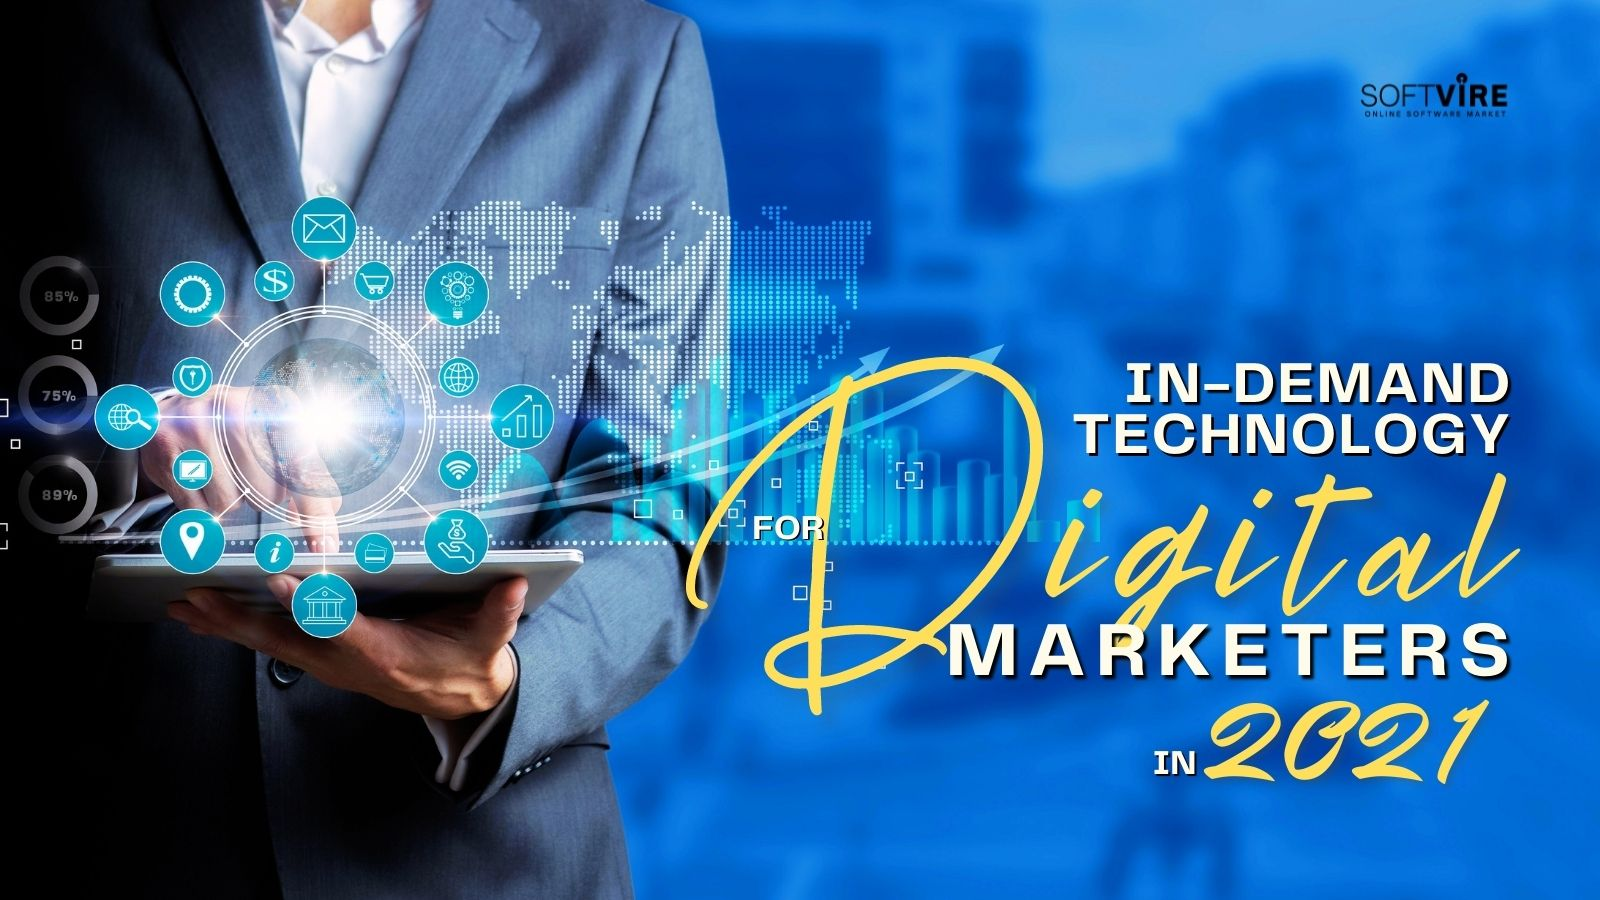 In-Demand Technology for Digital Marketers in 2021 - Softvire Global Market